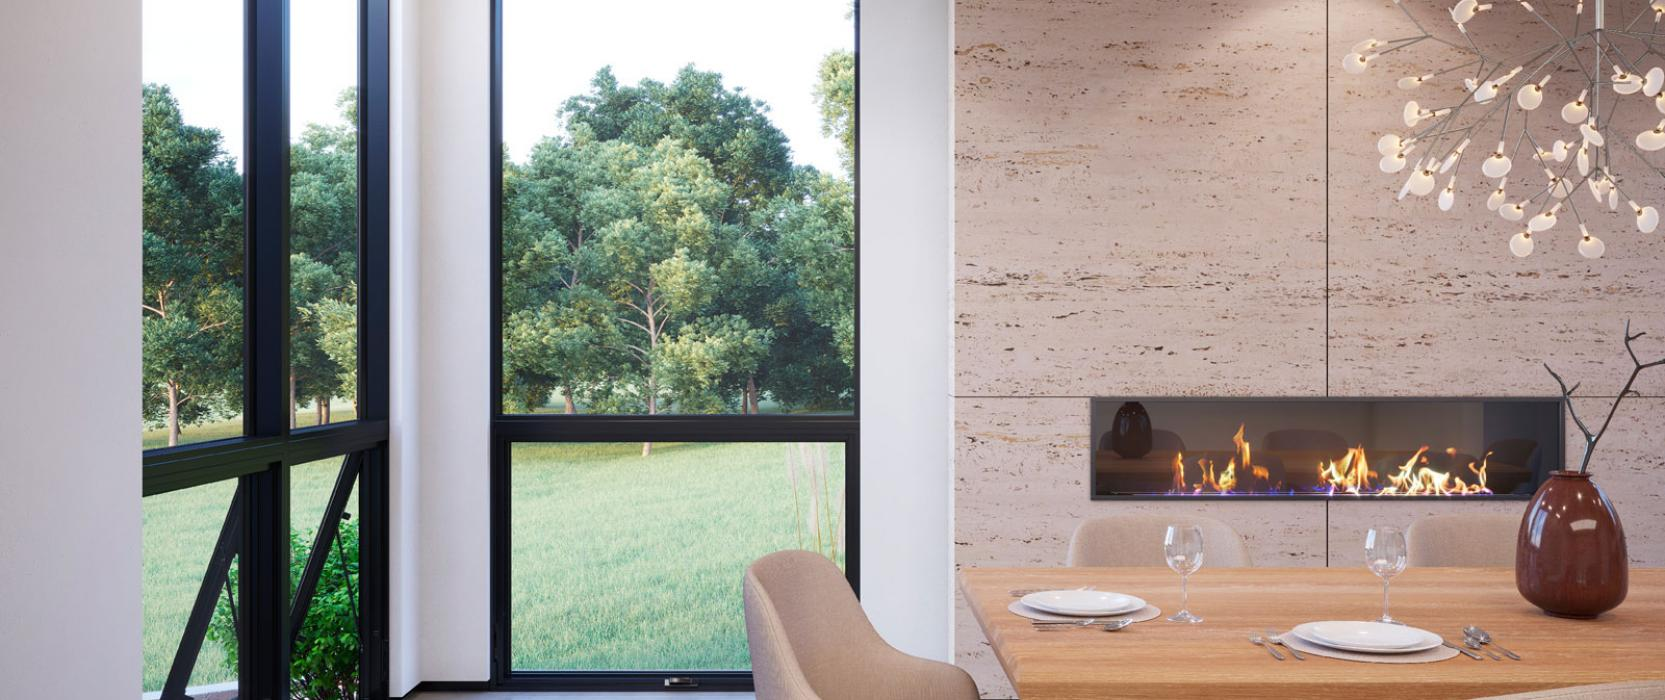 Custom, high-end windows: Signature Modern collection by Marvin